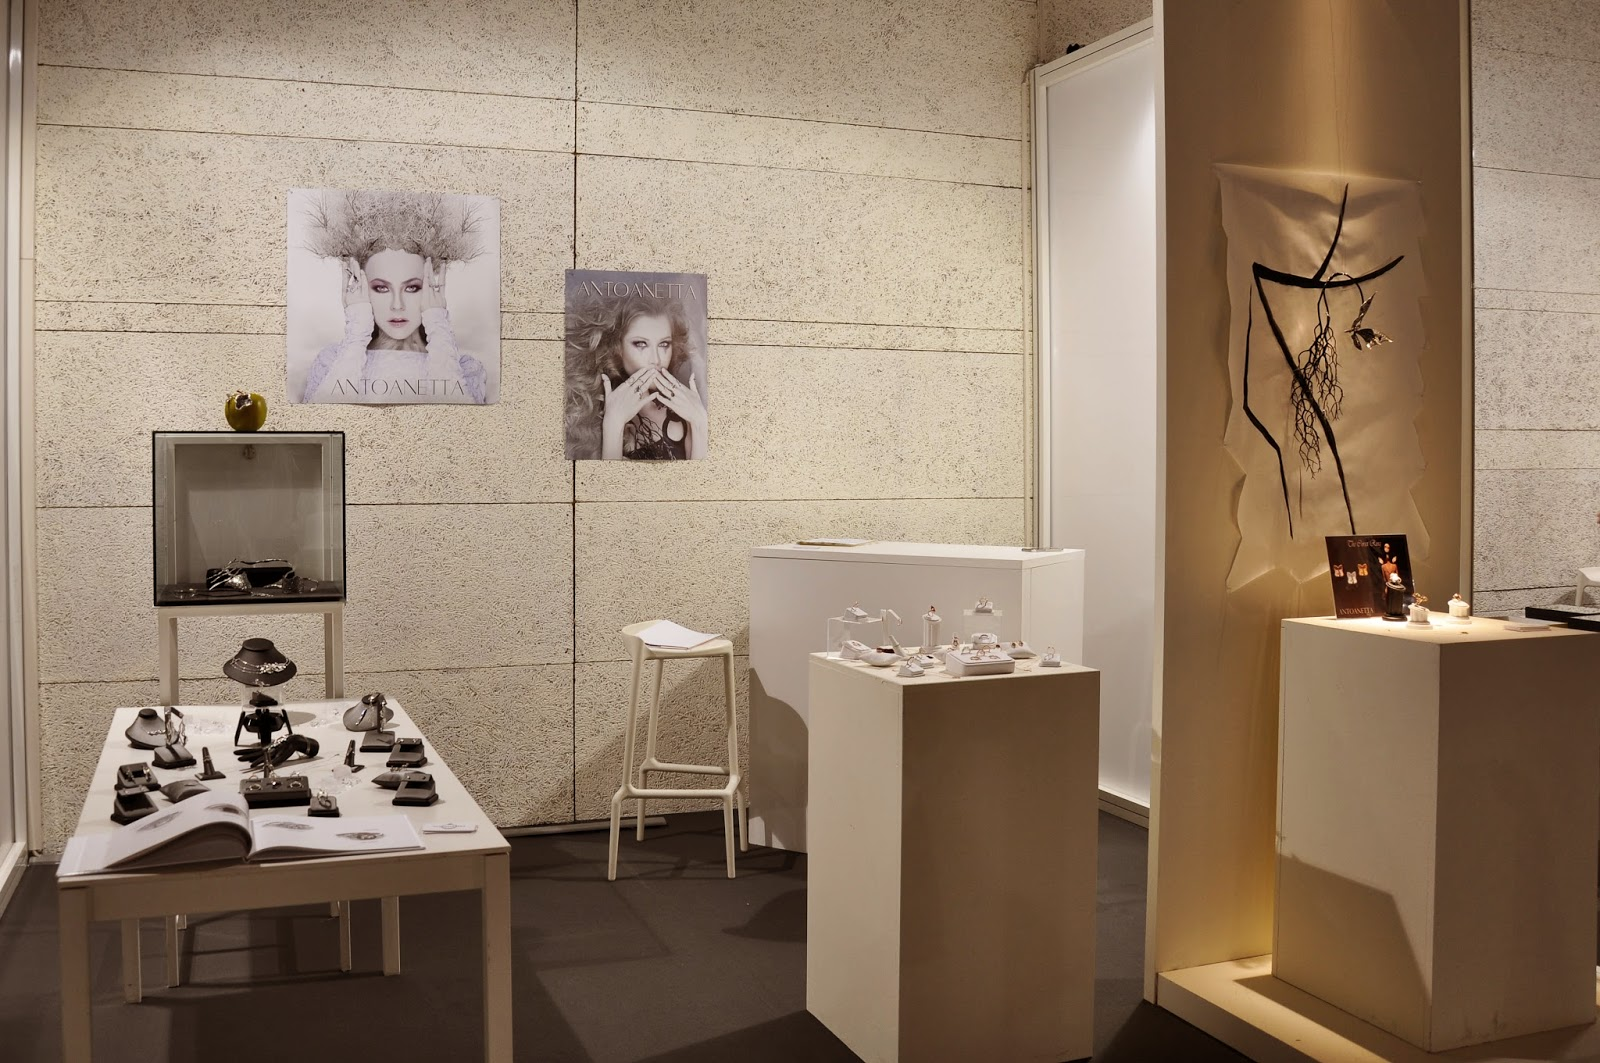 The booth of Antoaneta Ivanova of Antoanetta Fine Jewellery at Origin Fair in Vicenza, Italy